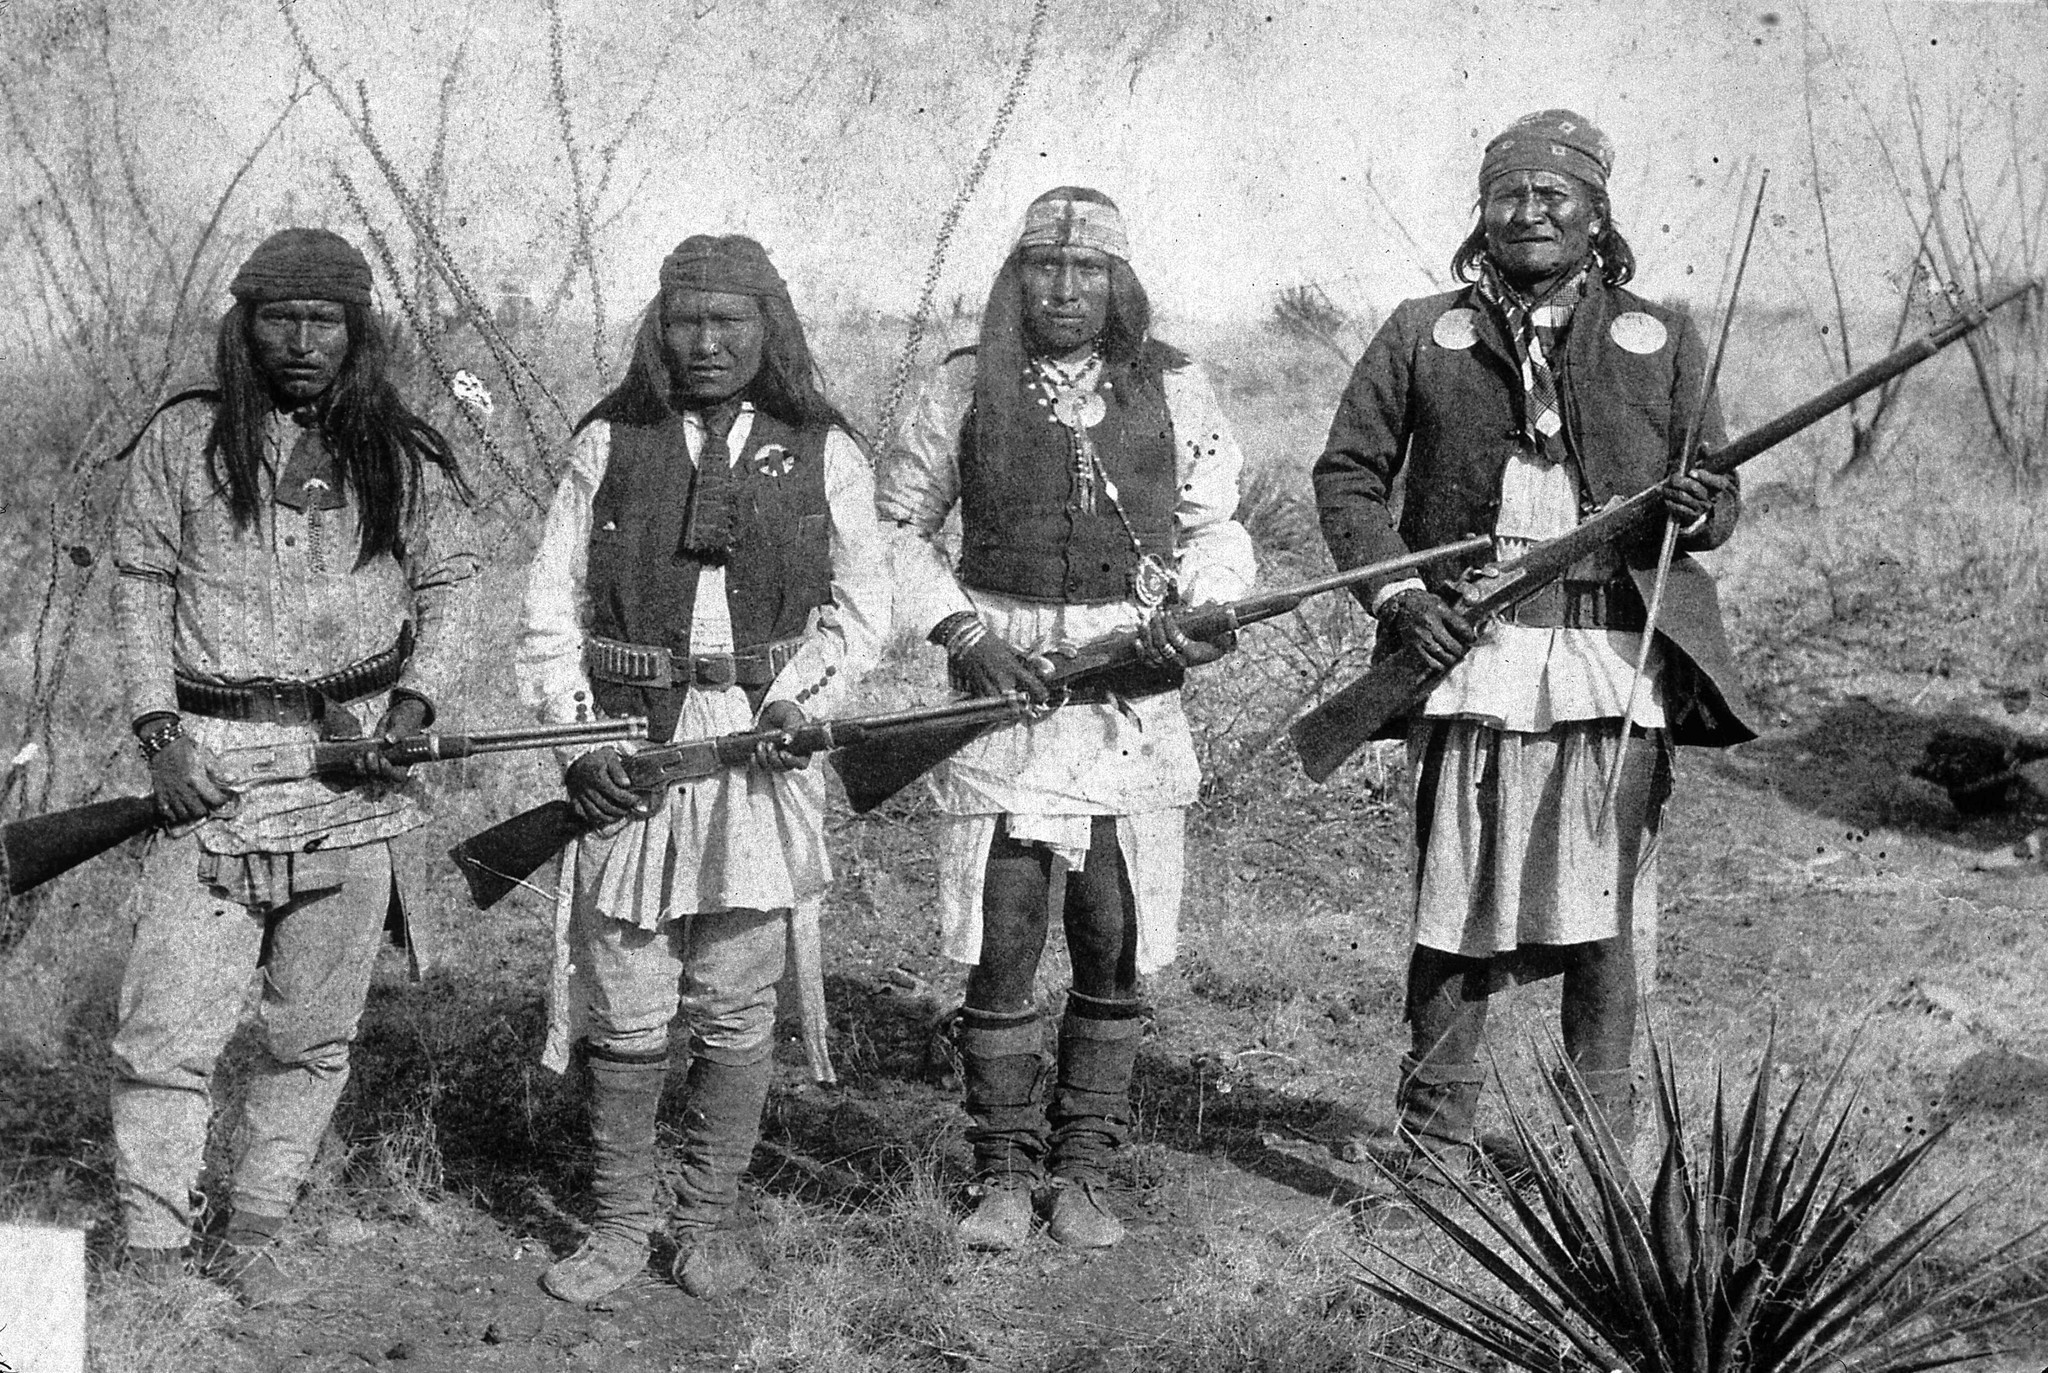 """an analysis of the apache wars on the genocide of the chiricahua indian tribe Interchangeably meaning """"traitor,"""" """"rebel,"""" or """"outlaw"""" from 1860–1886, whites  labeled chiricahua apaches who fled arizona and new mexico reservations and  participated in  have recounted the apache wars, the broncho period, and the   kill the indians as the tigers and the wolves are killed""""11."""